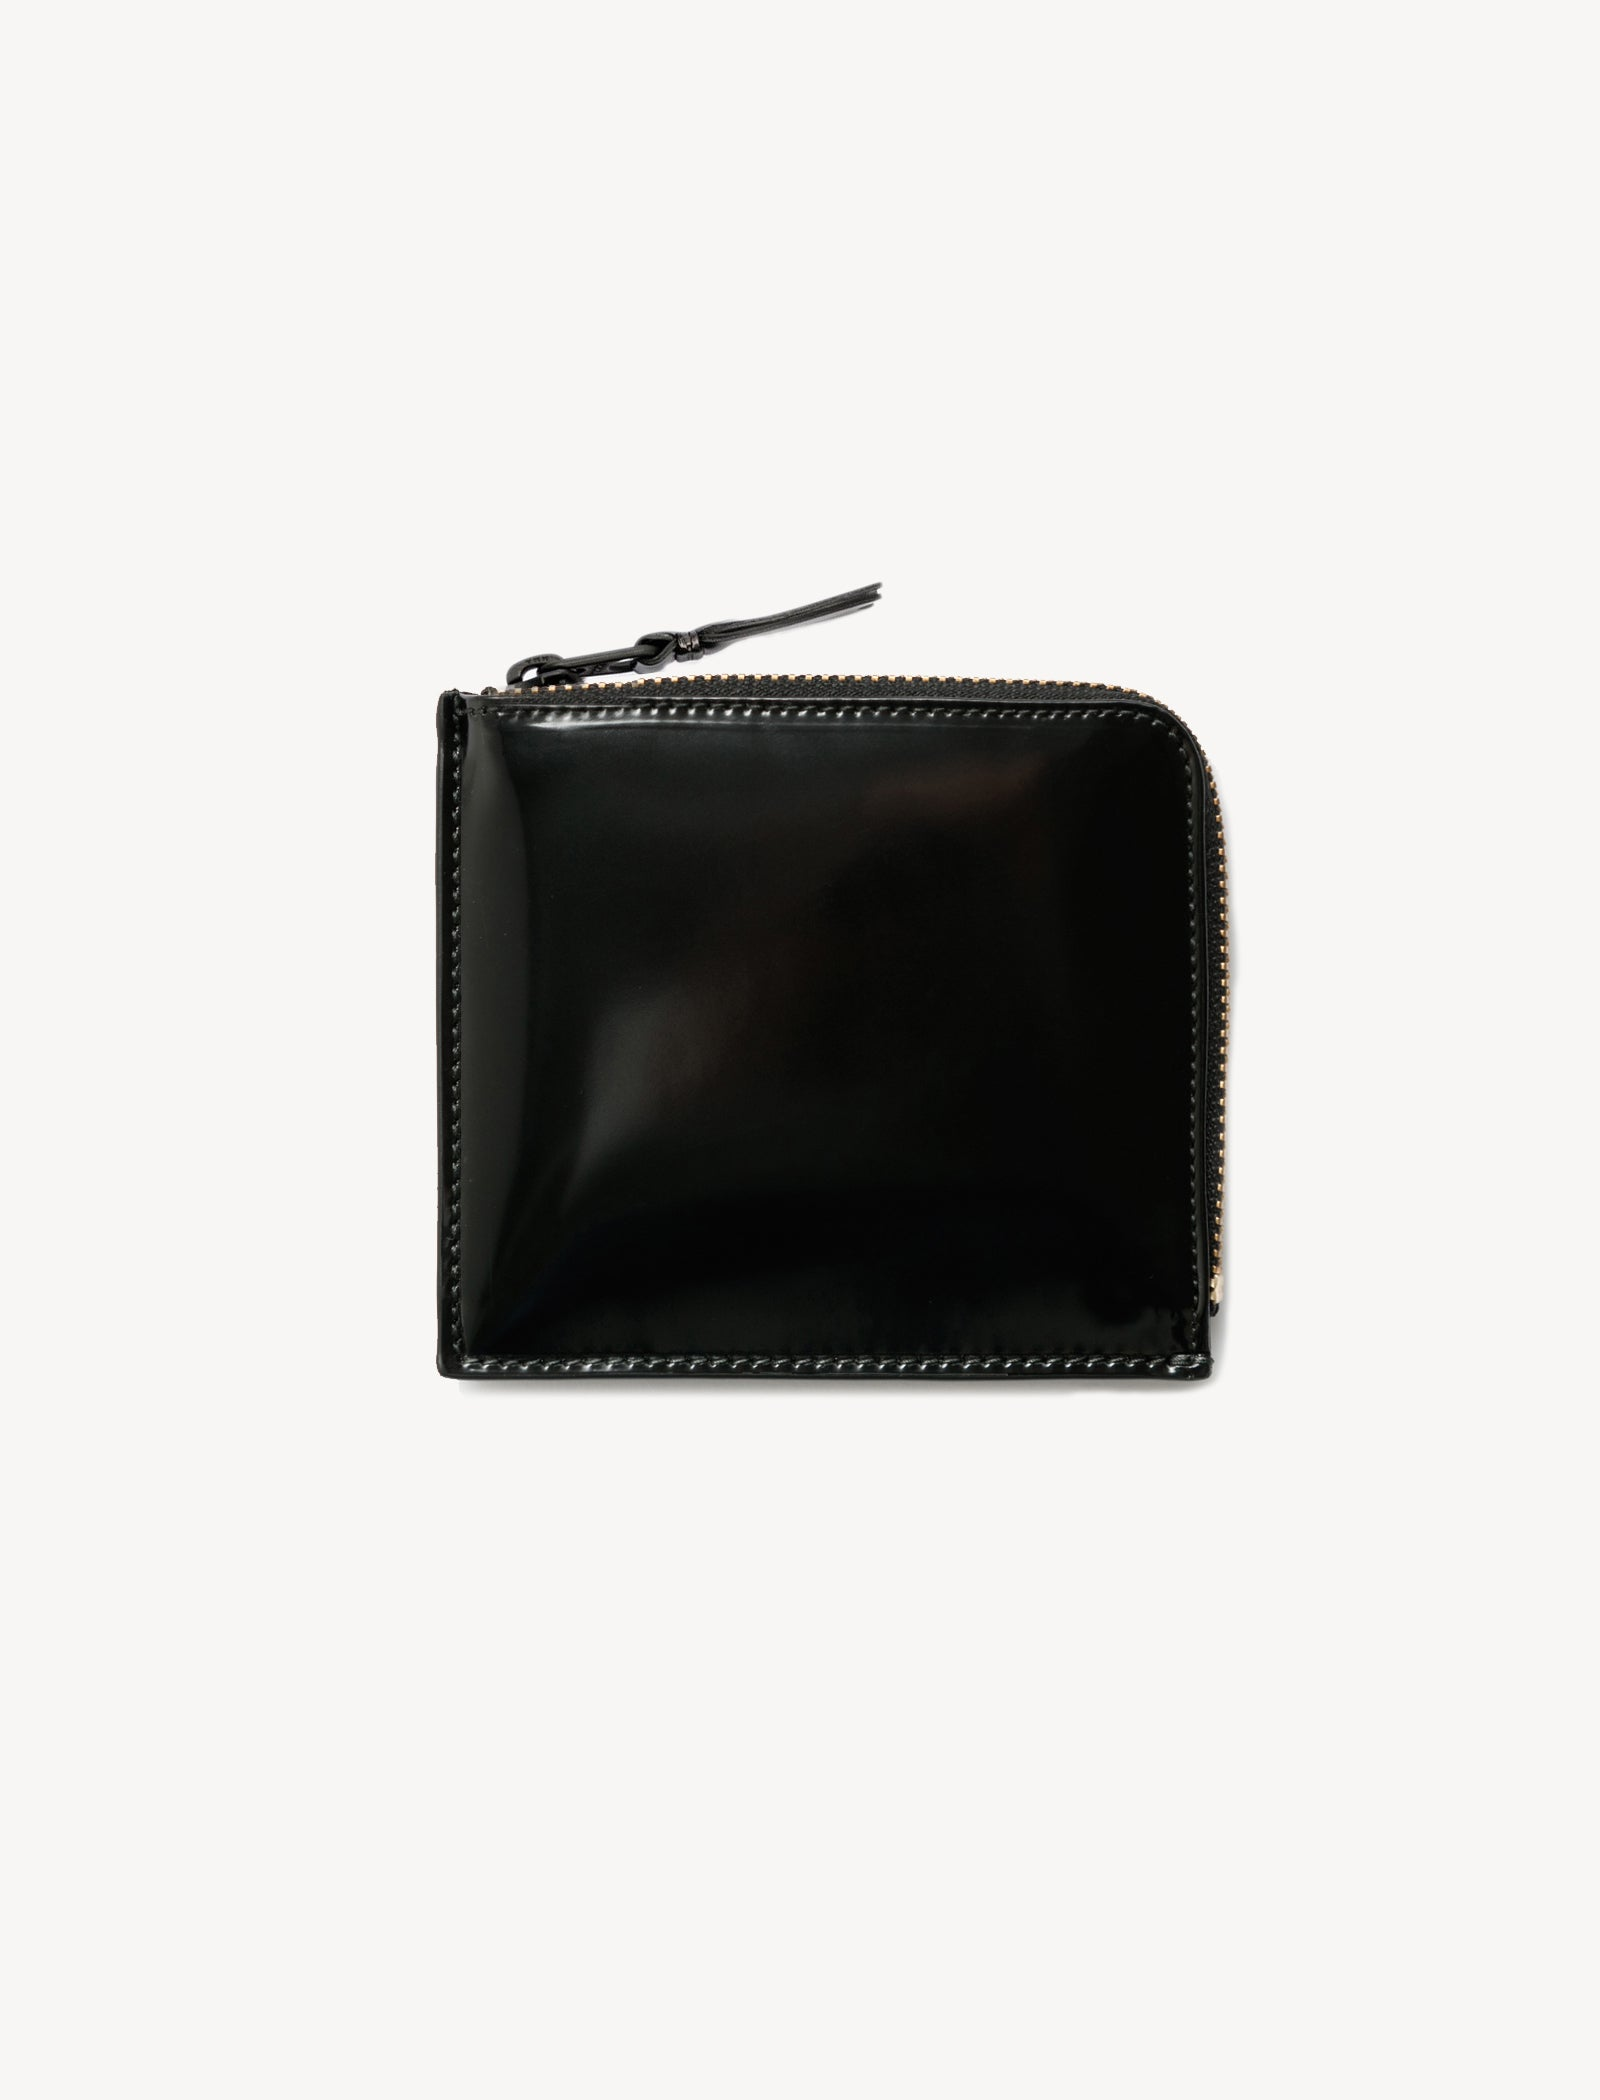 Very Black 3/4 Zip Wallet - Black - SA3100VB